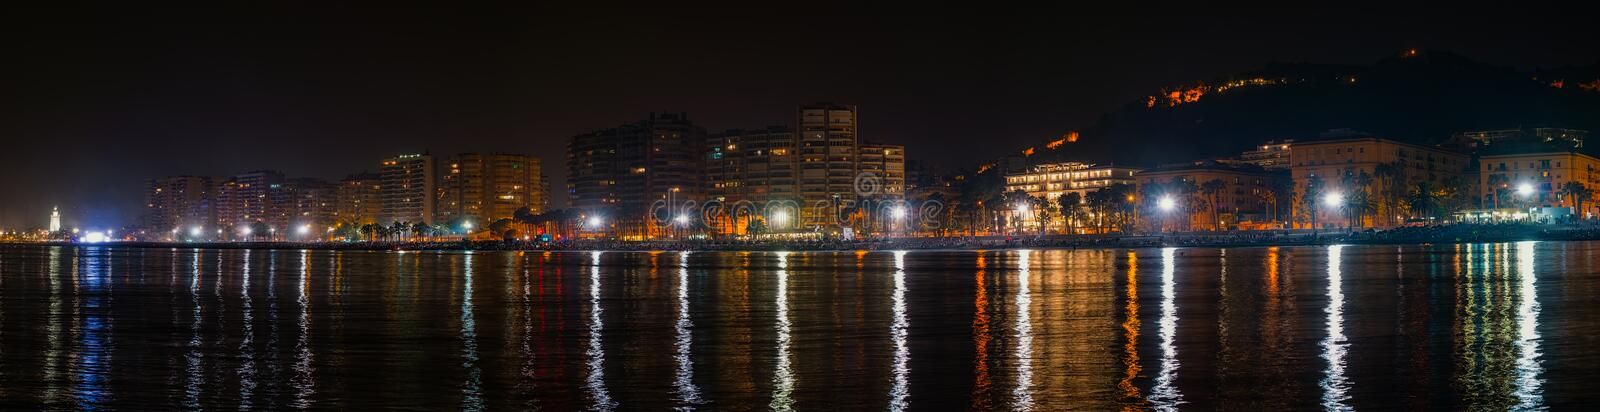 The Malagueta beach at night time in Malaga, Spain. Panoramic view royalty free stock images